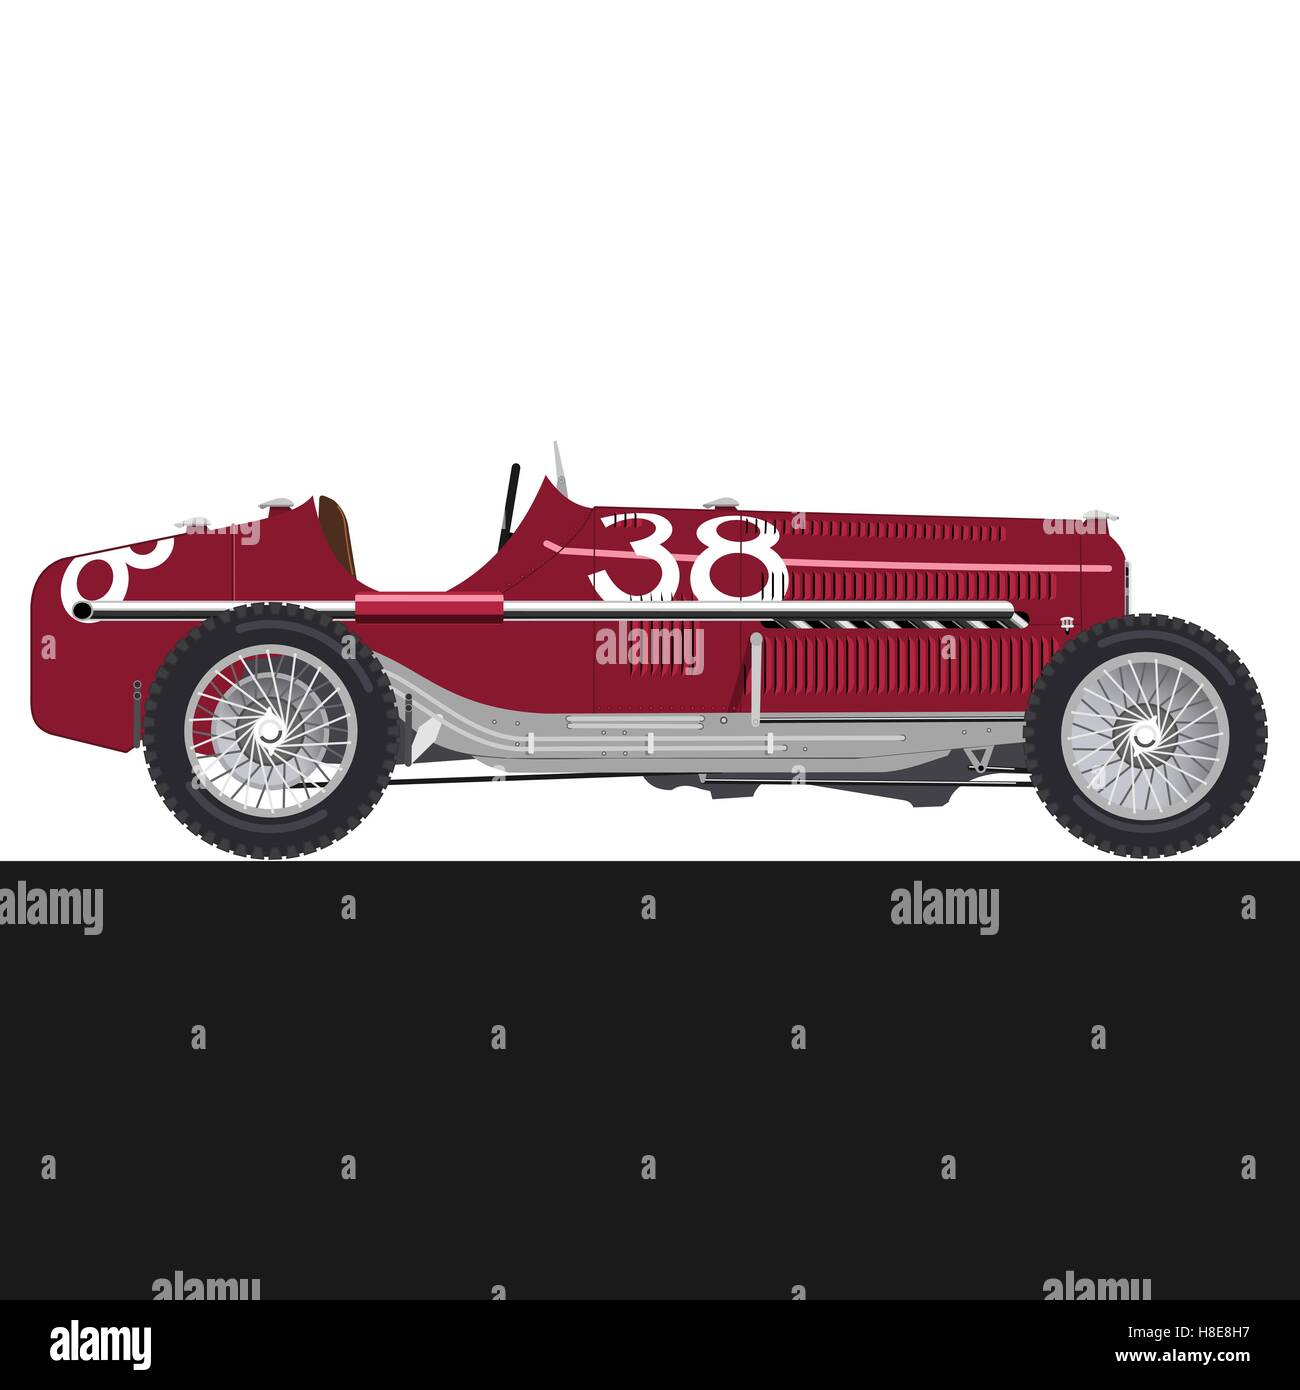 Red old racing car Stock Vector Art & Illustration, Vector Image ...